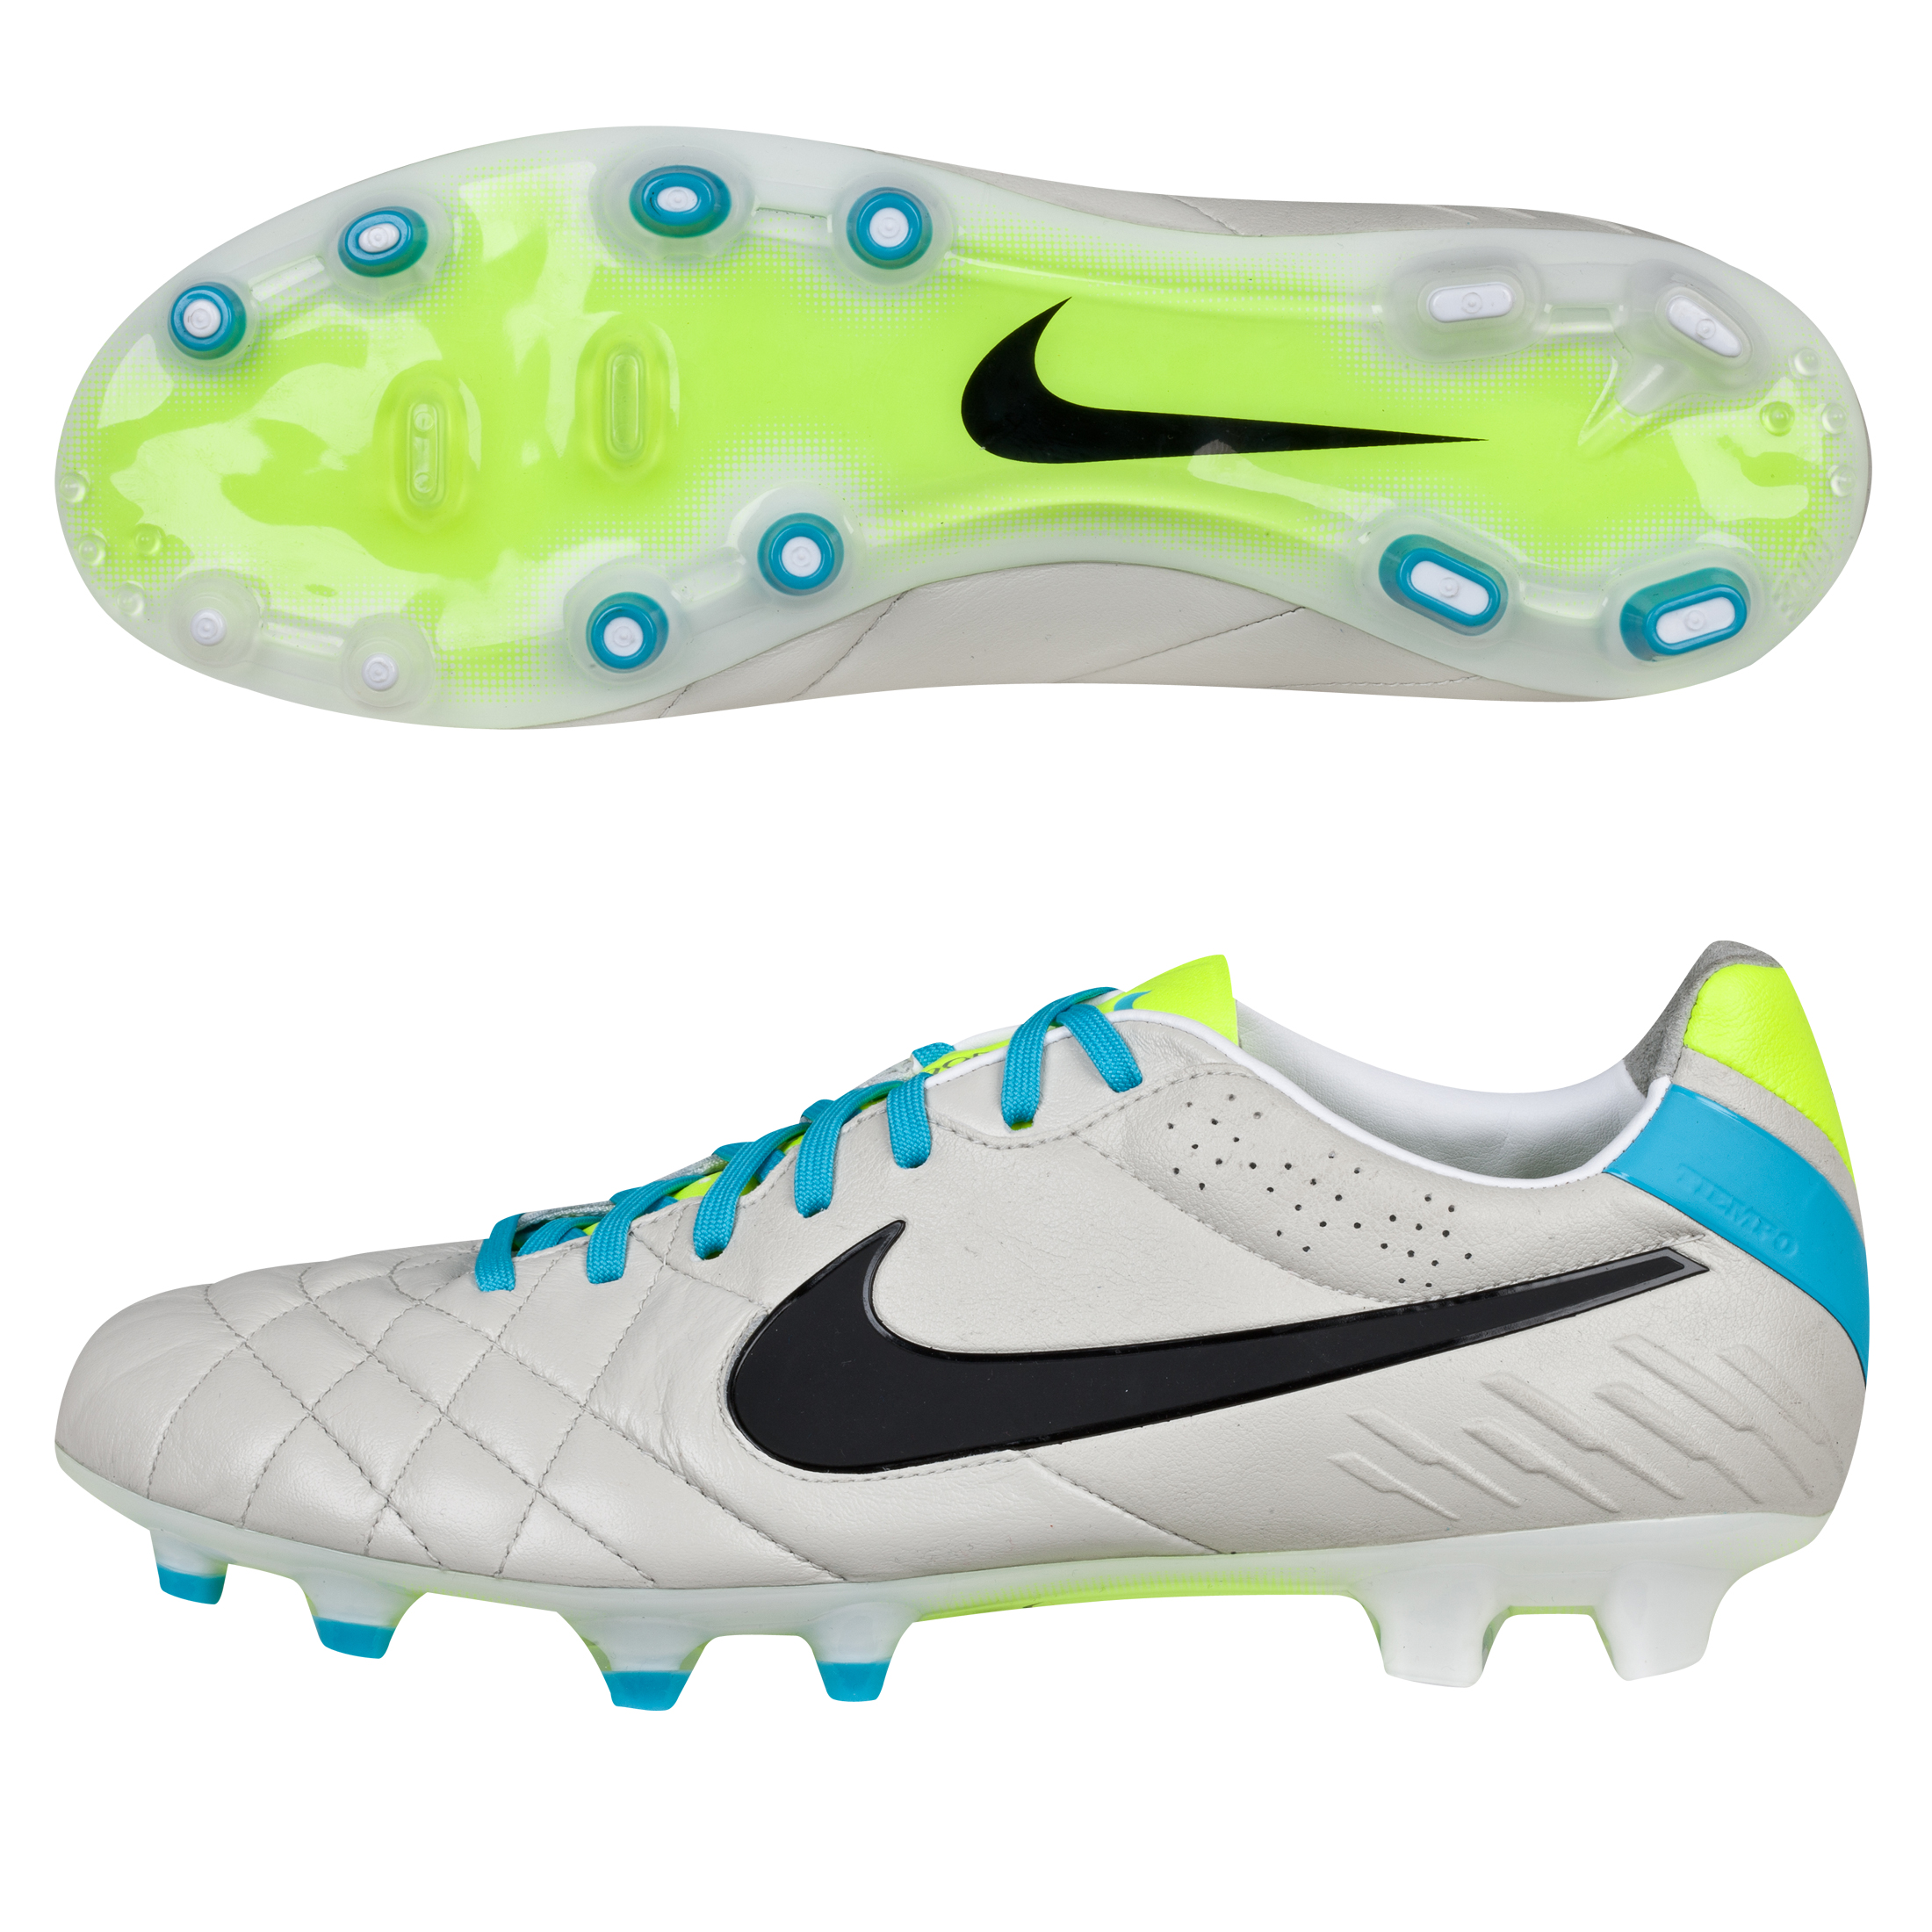 Nike Tiempo Legend IV Firm Ground Football Boots Lt Grey